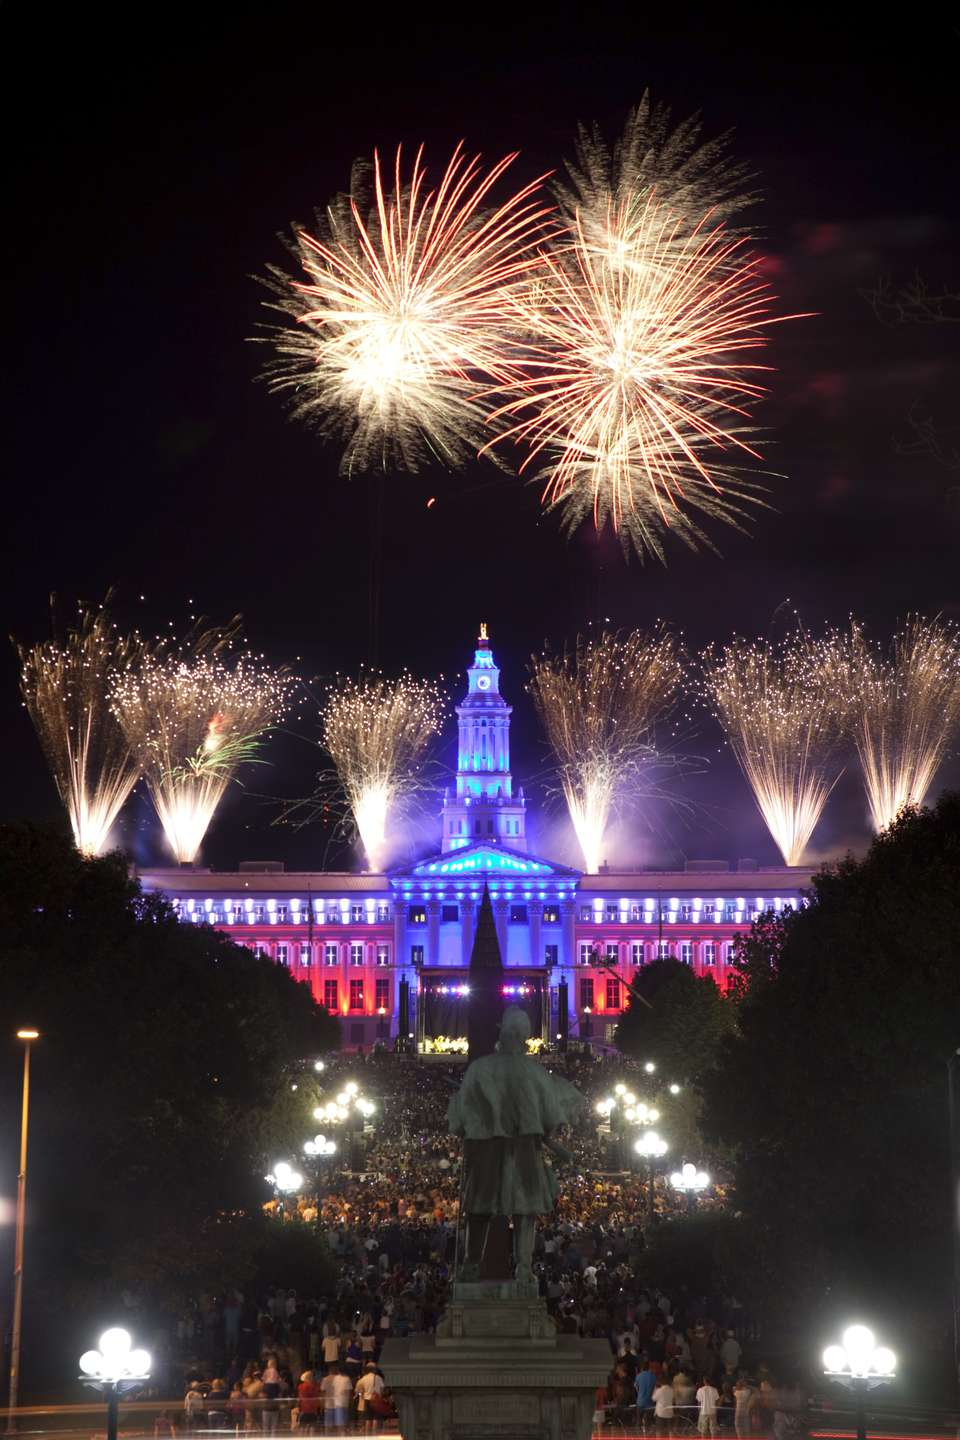 Fireworks in Denver